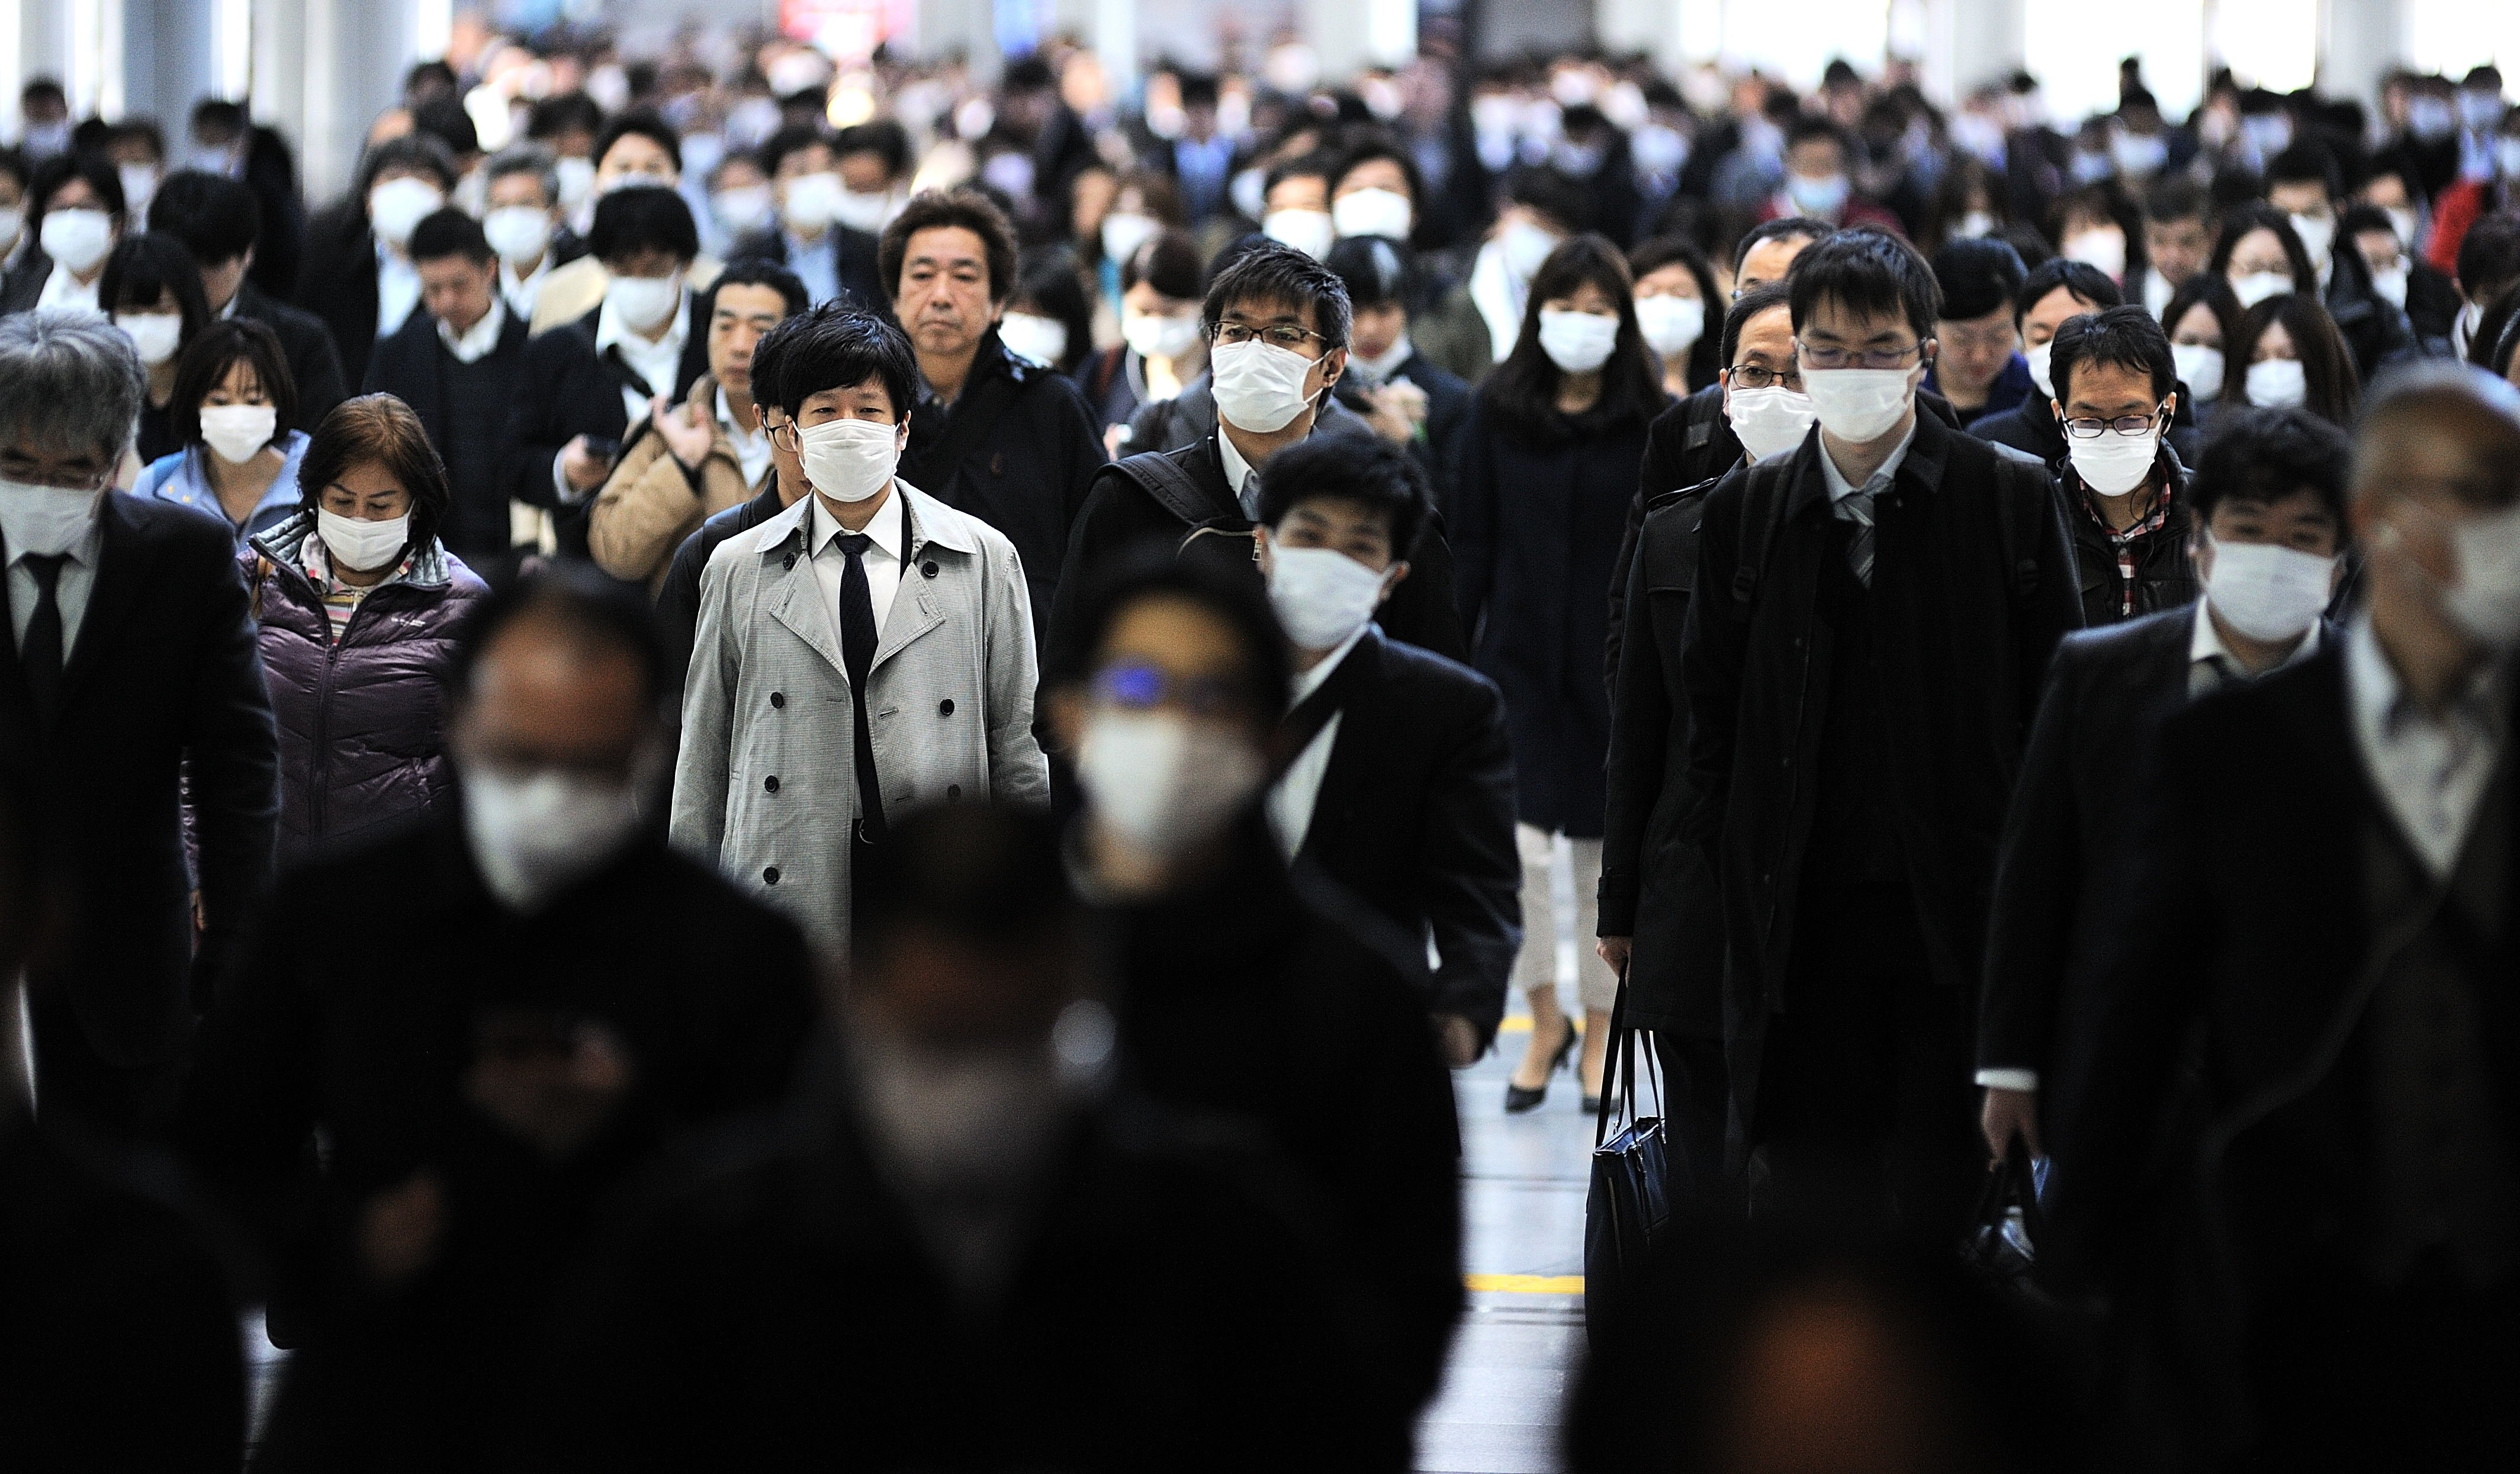 Despite calls to stay home, many Japanese donning masks fill the streets of Tokyo during rush hour as seen in this photo taken on Thursday, April 02, 2020. (AA Photo)